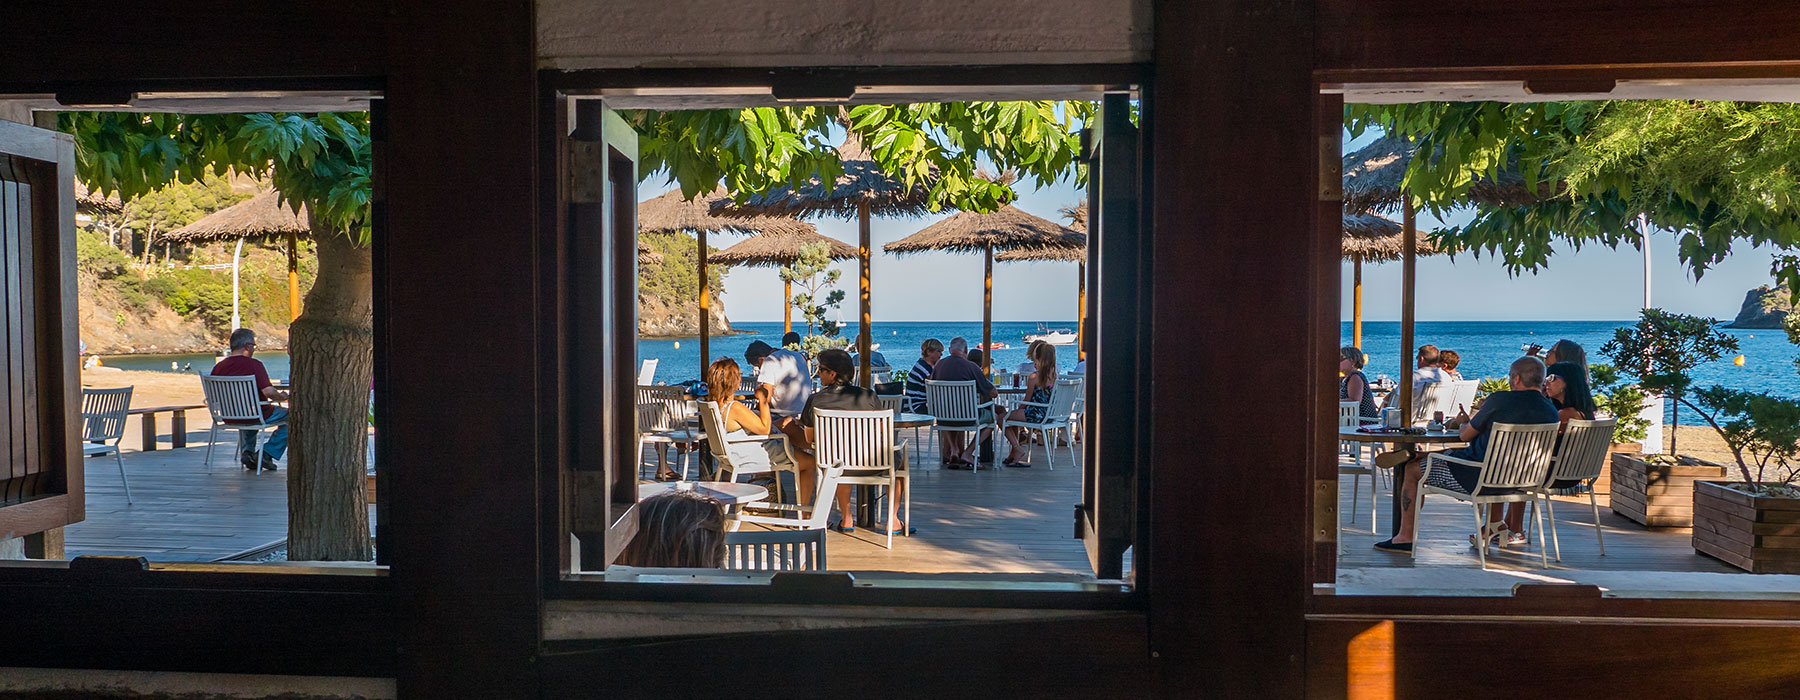 cala-montjoi-restauration-food-home